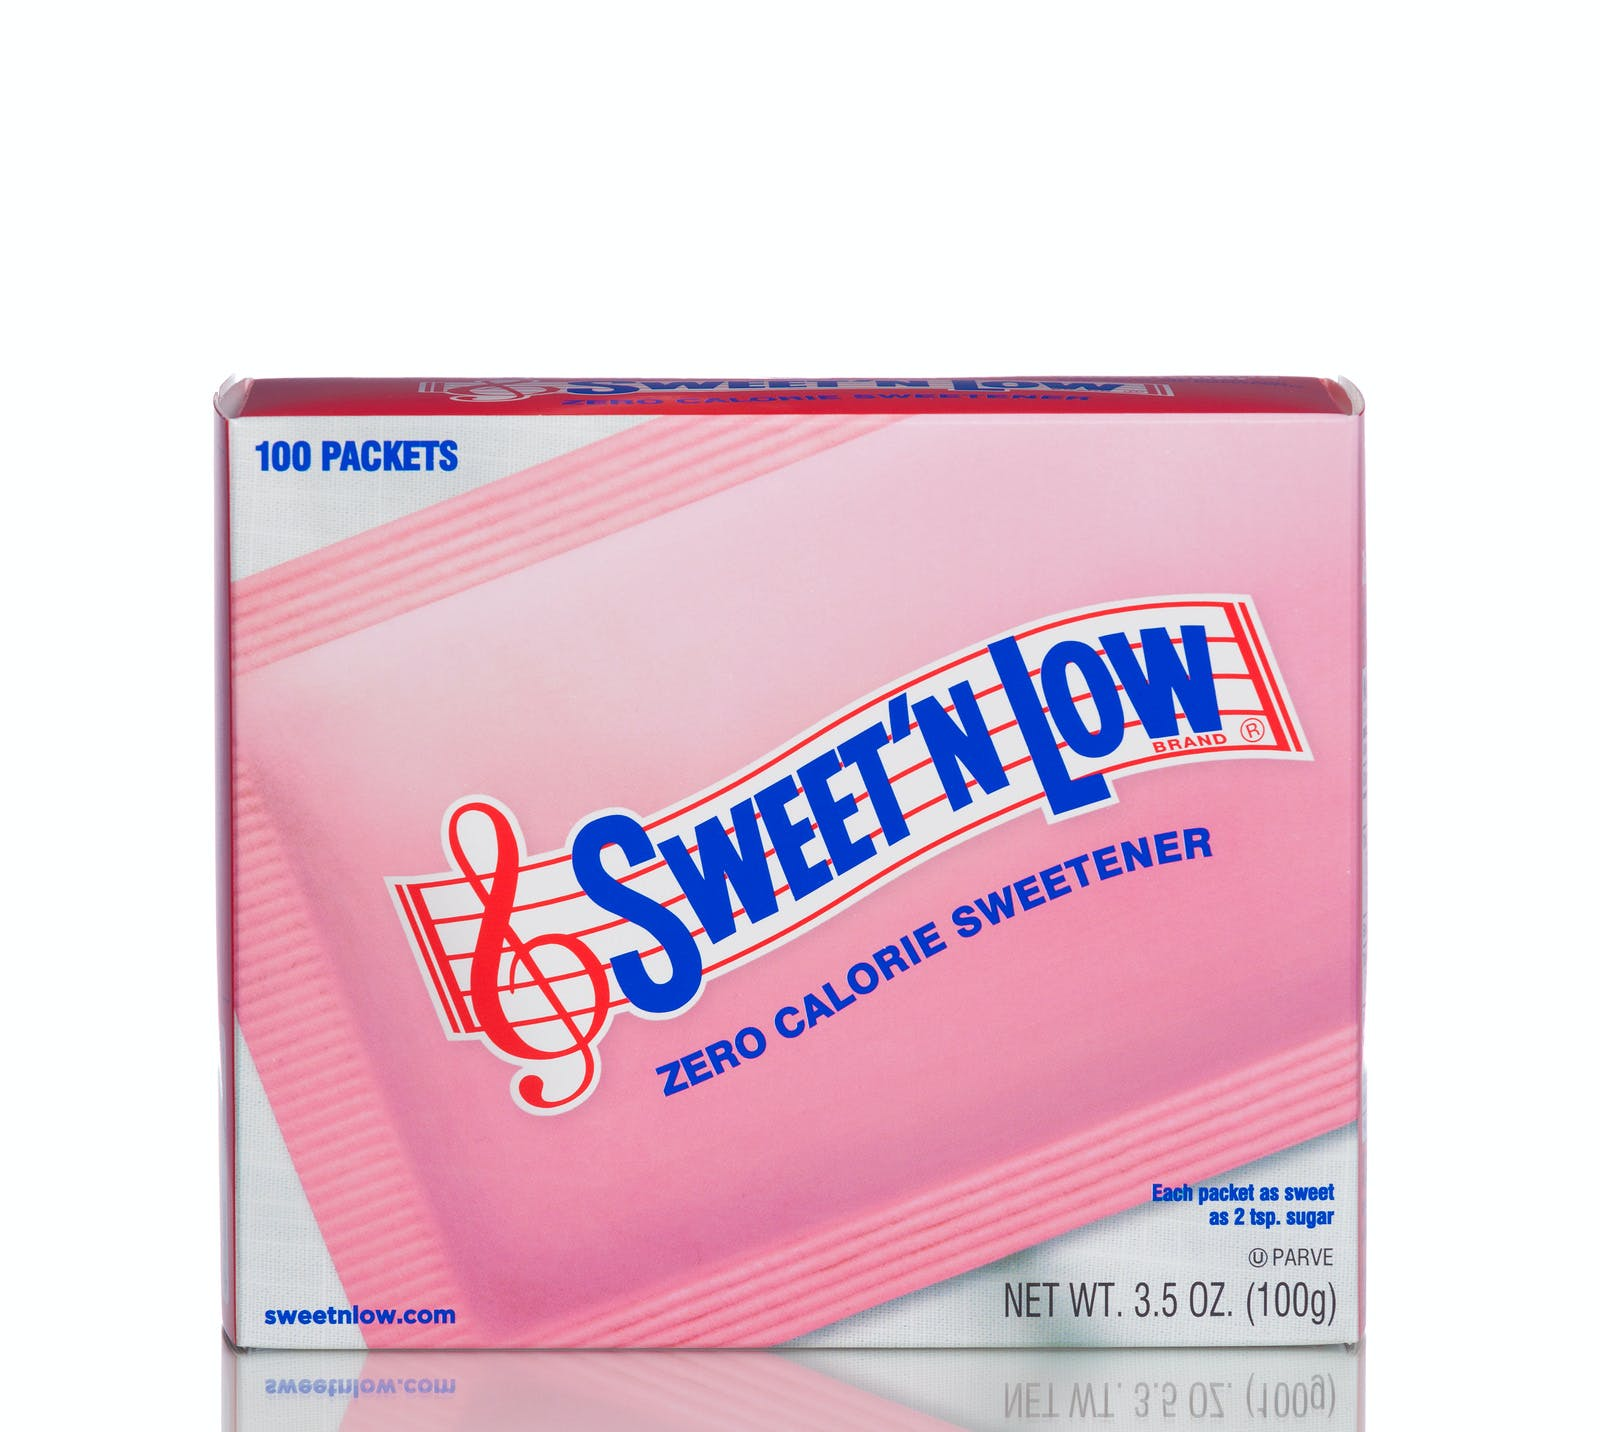 MIAMI, USA – April 21, 2015: A box of Sweet'N Low. The popular artificial sweetener is made from granulated saccharin with dextrose and cream of tartar.